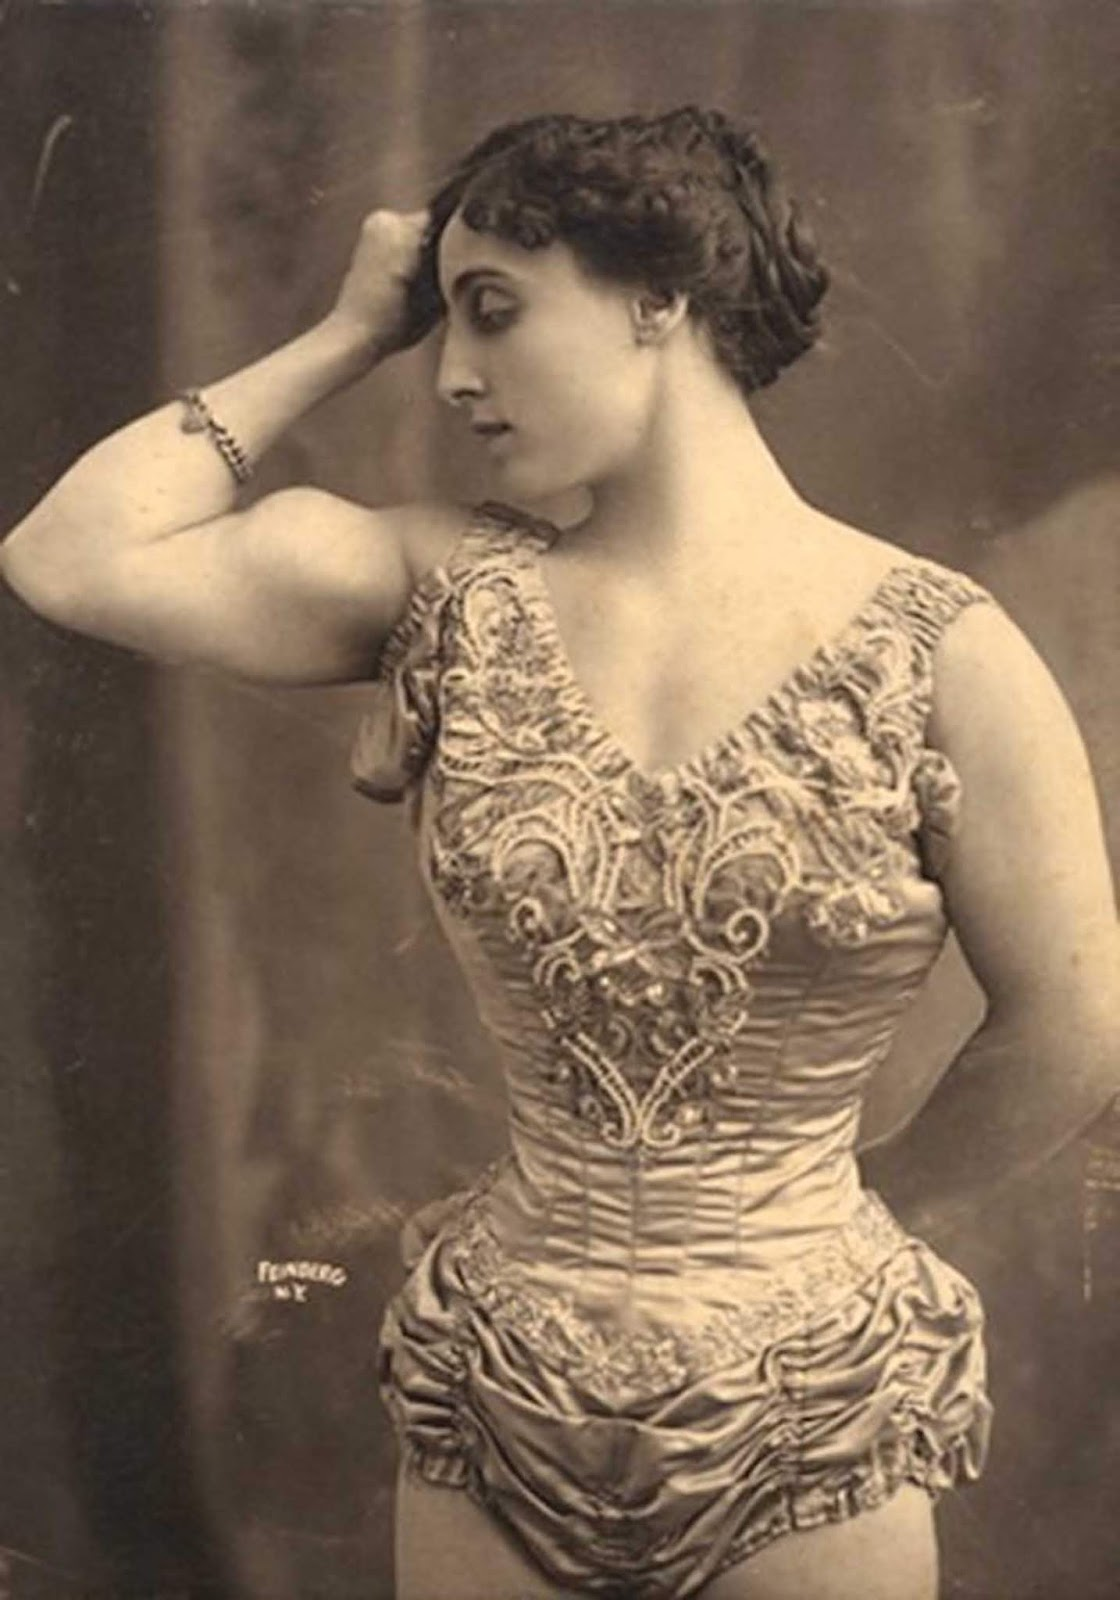 'Iron Woman' circus performer, 1905.